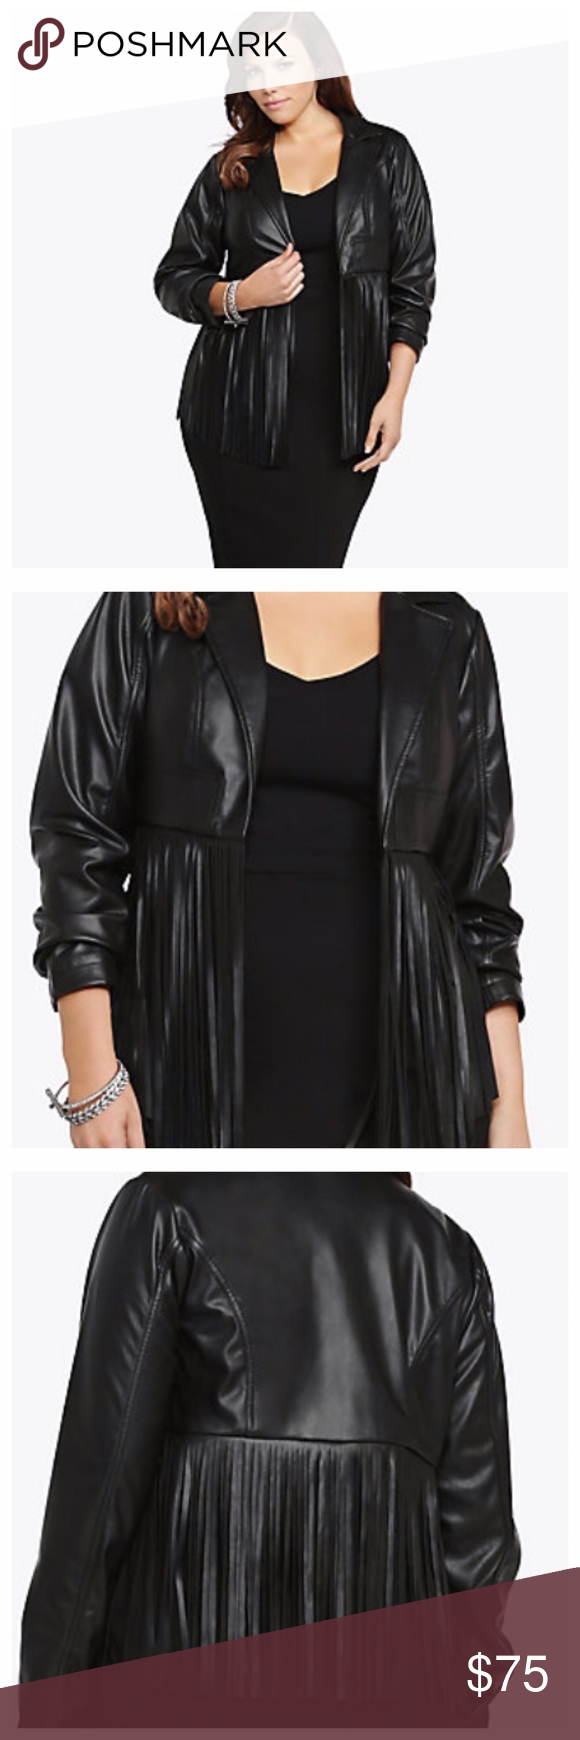 Torrid Fringe Cropped Faux Leather Jacket This was apart of Torrid premium the jacket sold out quick. Bought and never got to wear it. My loss your gain for the fraction of the cost. DETAILS Torrid Premium line, this black faux leather jacket is cropped with oodles of fringe on the bottom. An open front, long sleeves and a classic collar give the sexy jacket a polished look. ❌NO TRADES OR PP❌ Torrid Jackets & Coats